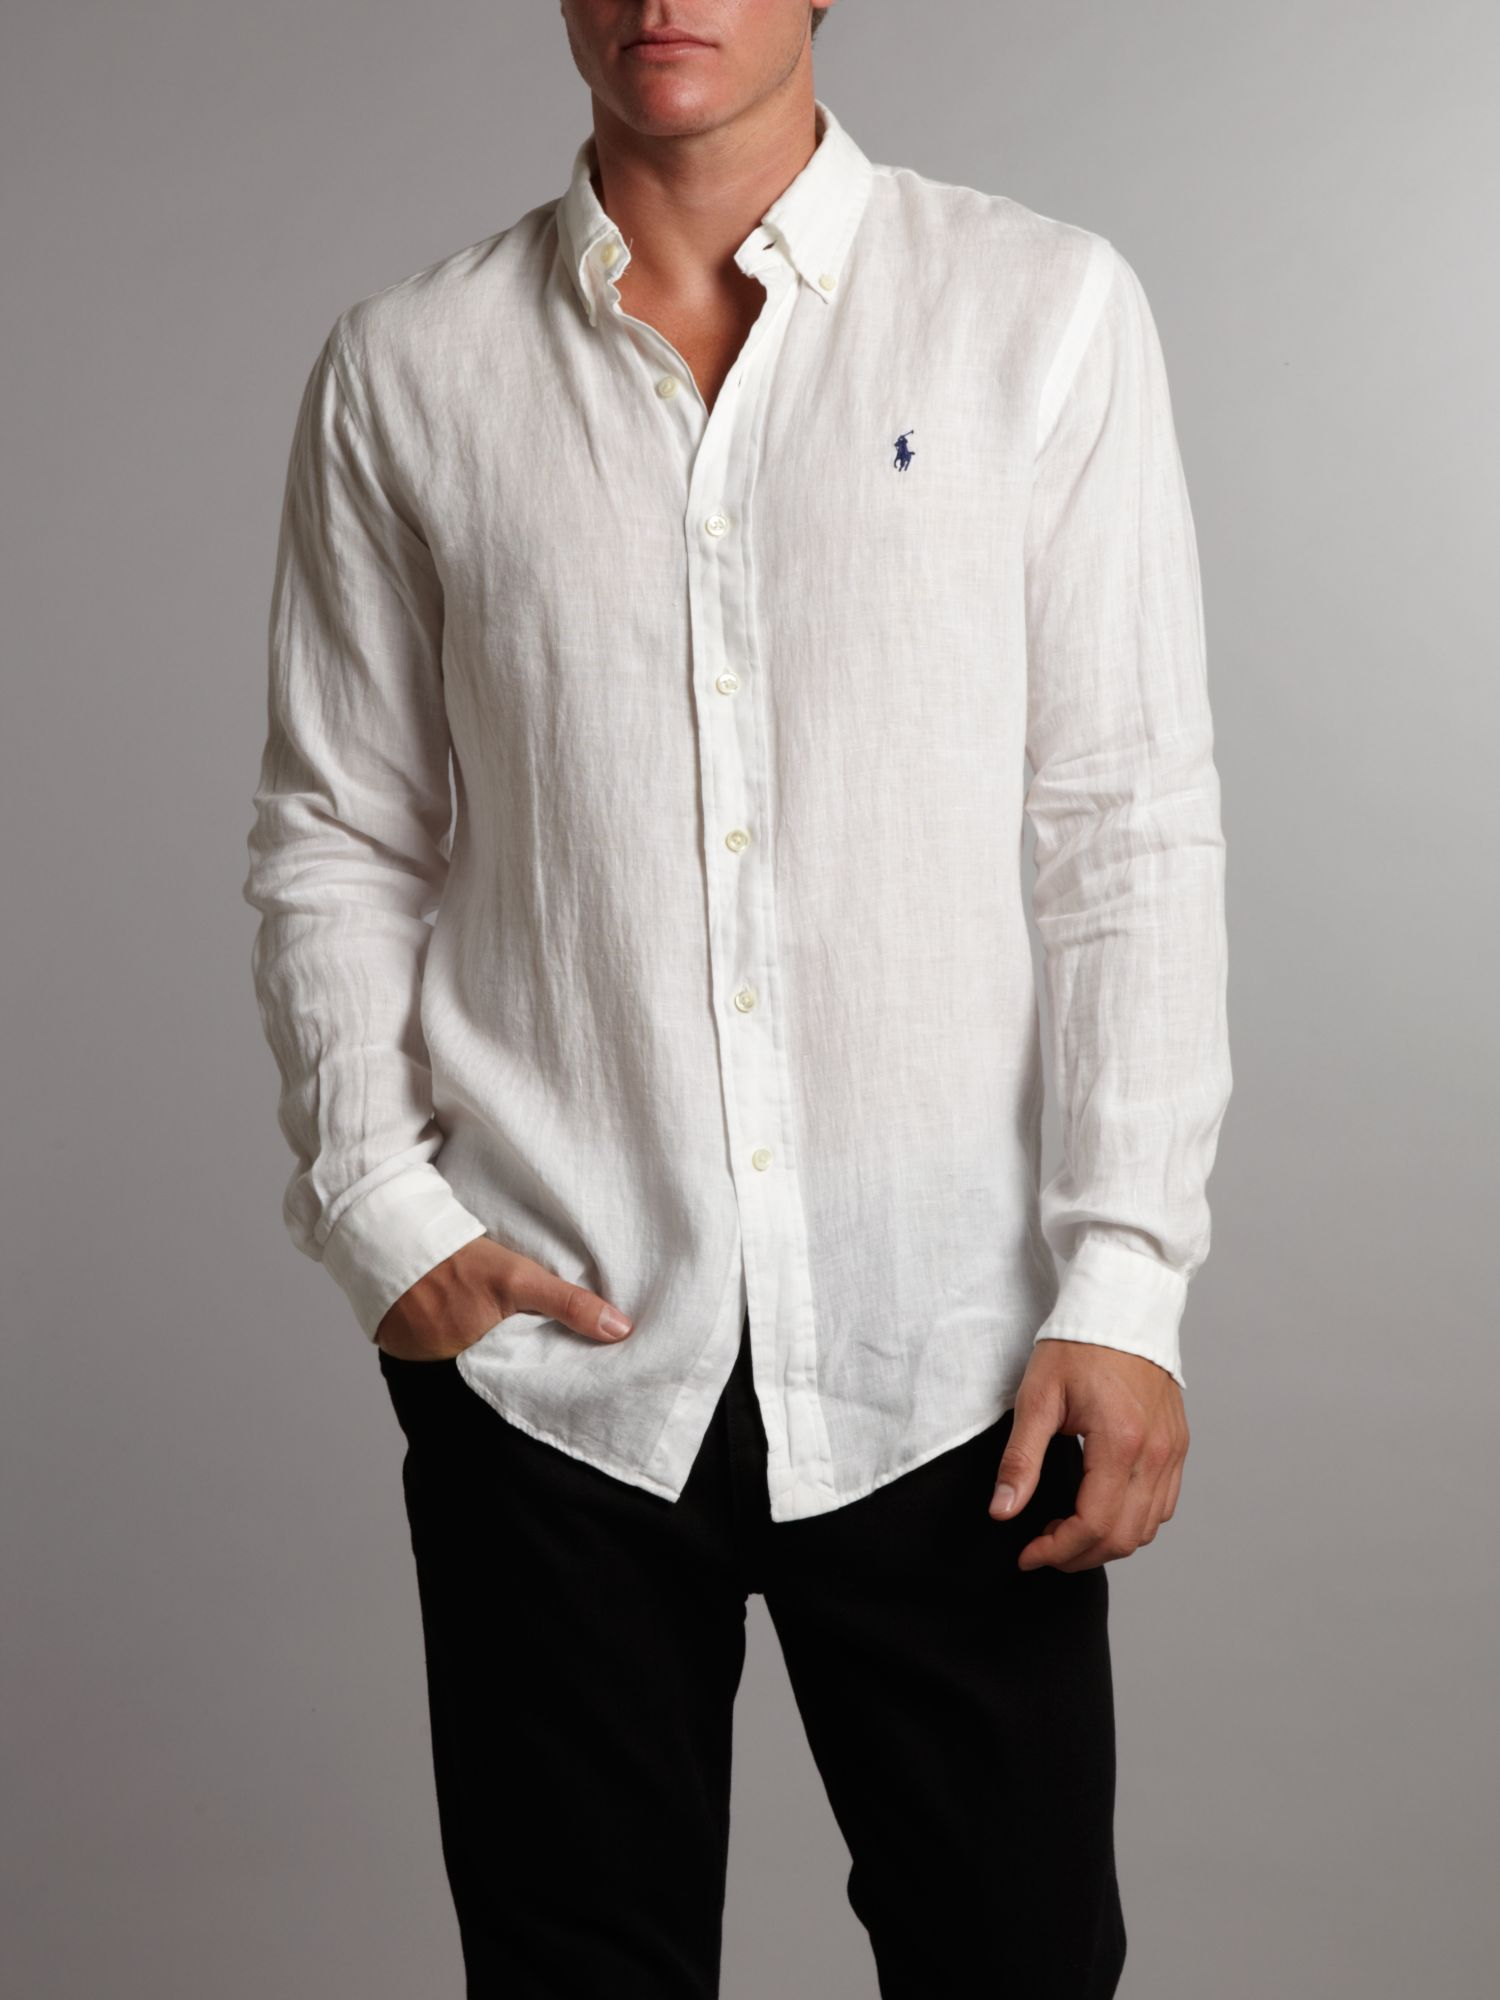 9b9fbd271 ... inexpensive lyst polo ralph lauren linen button down shirt in white for  men b791c 9ddc6